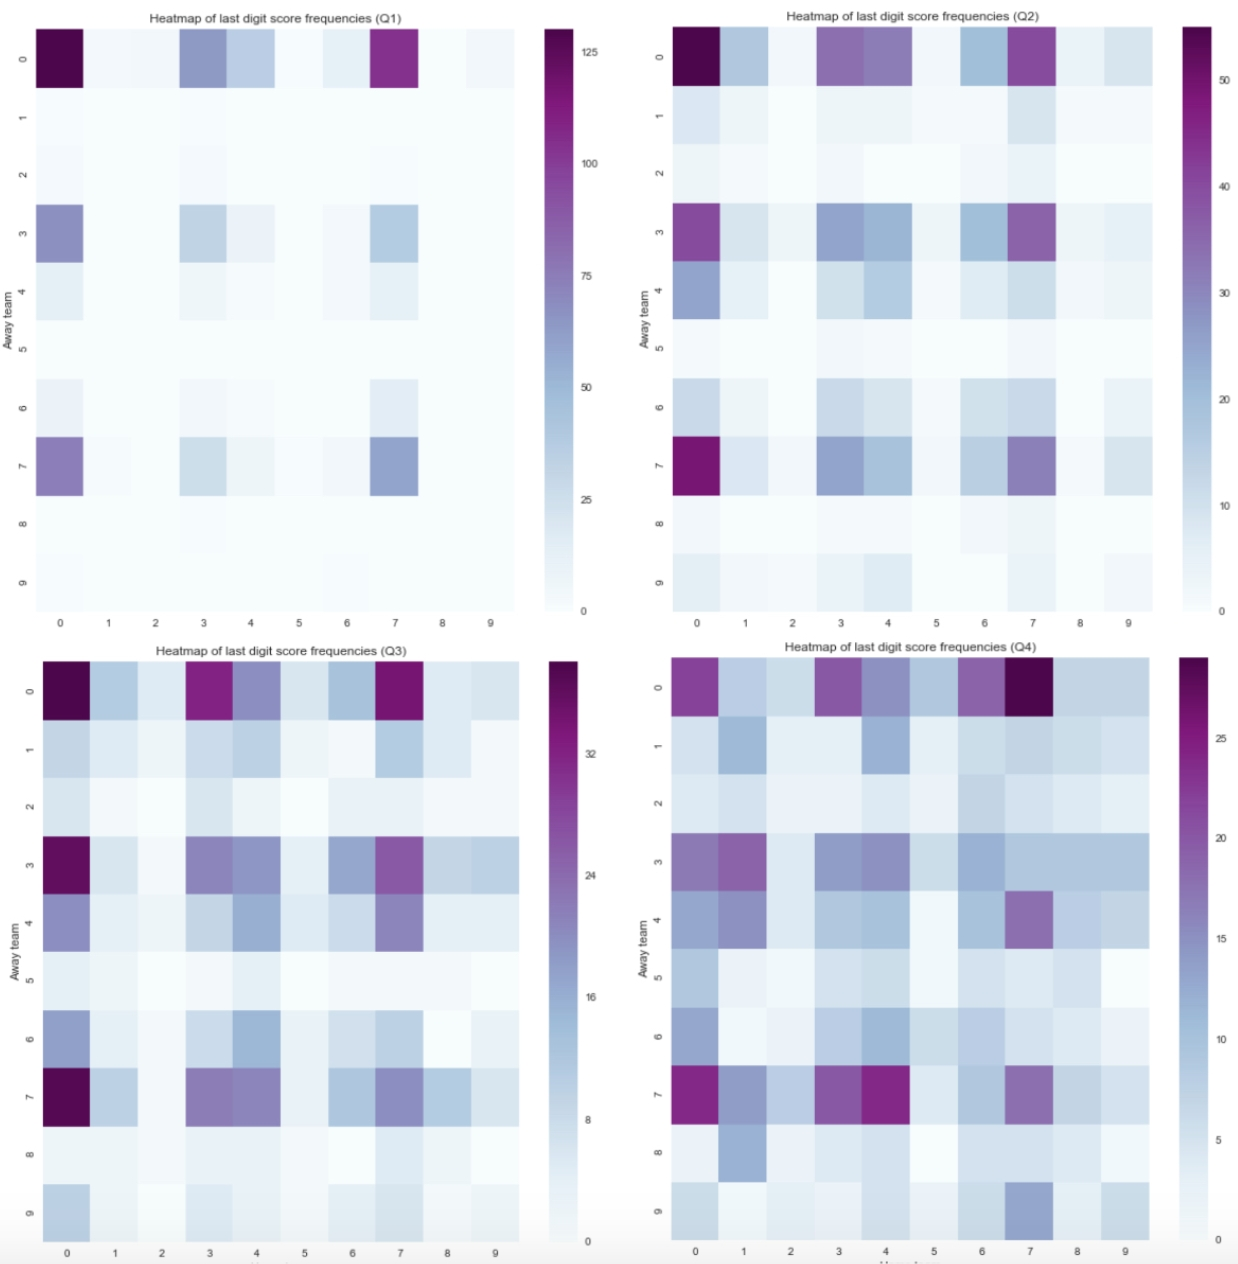 How Much Is Your Super Bowl Square Worth? - Daniel Alpert inside Super Bowl Squares Heat Map